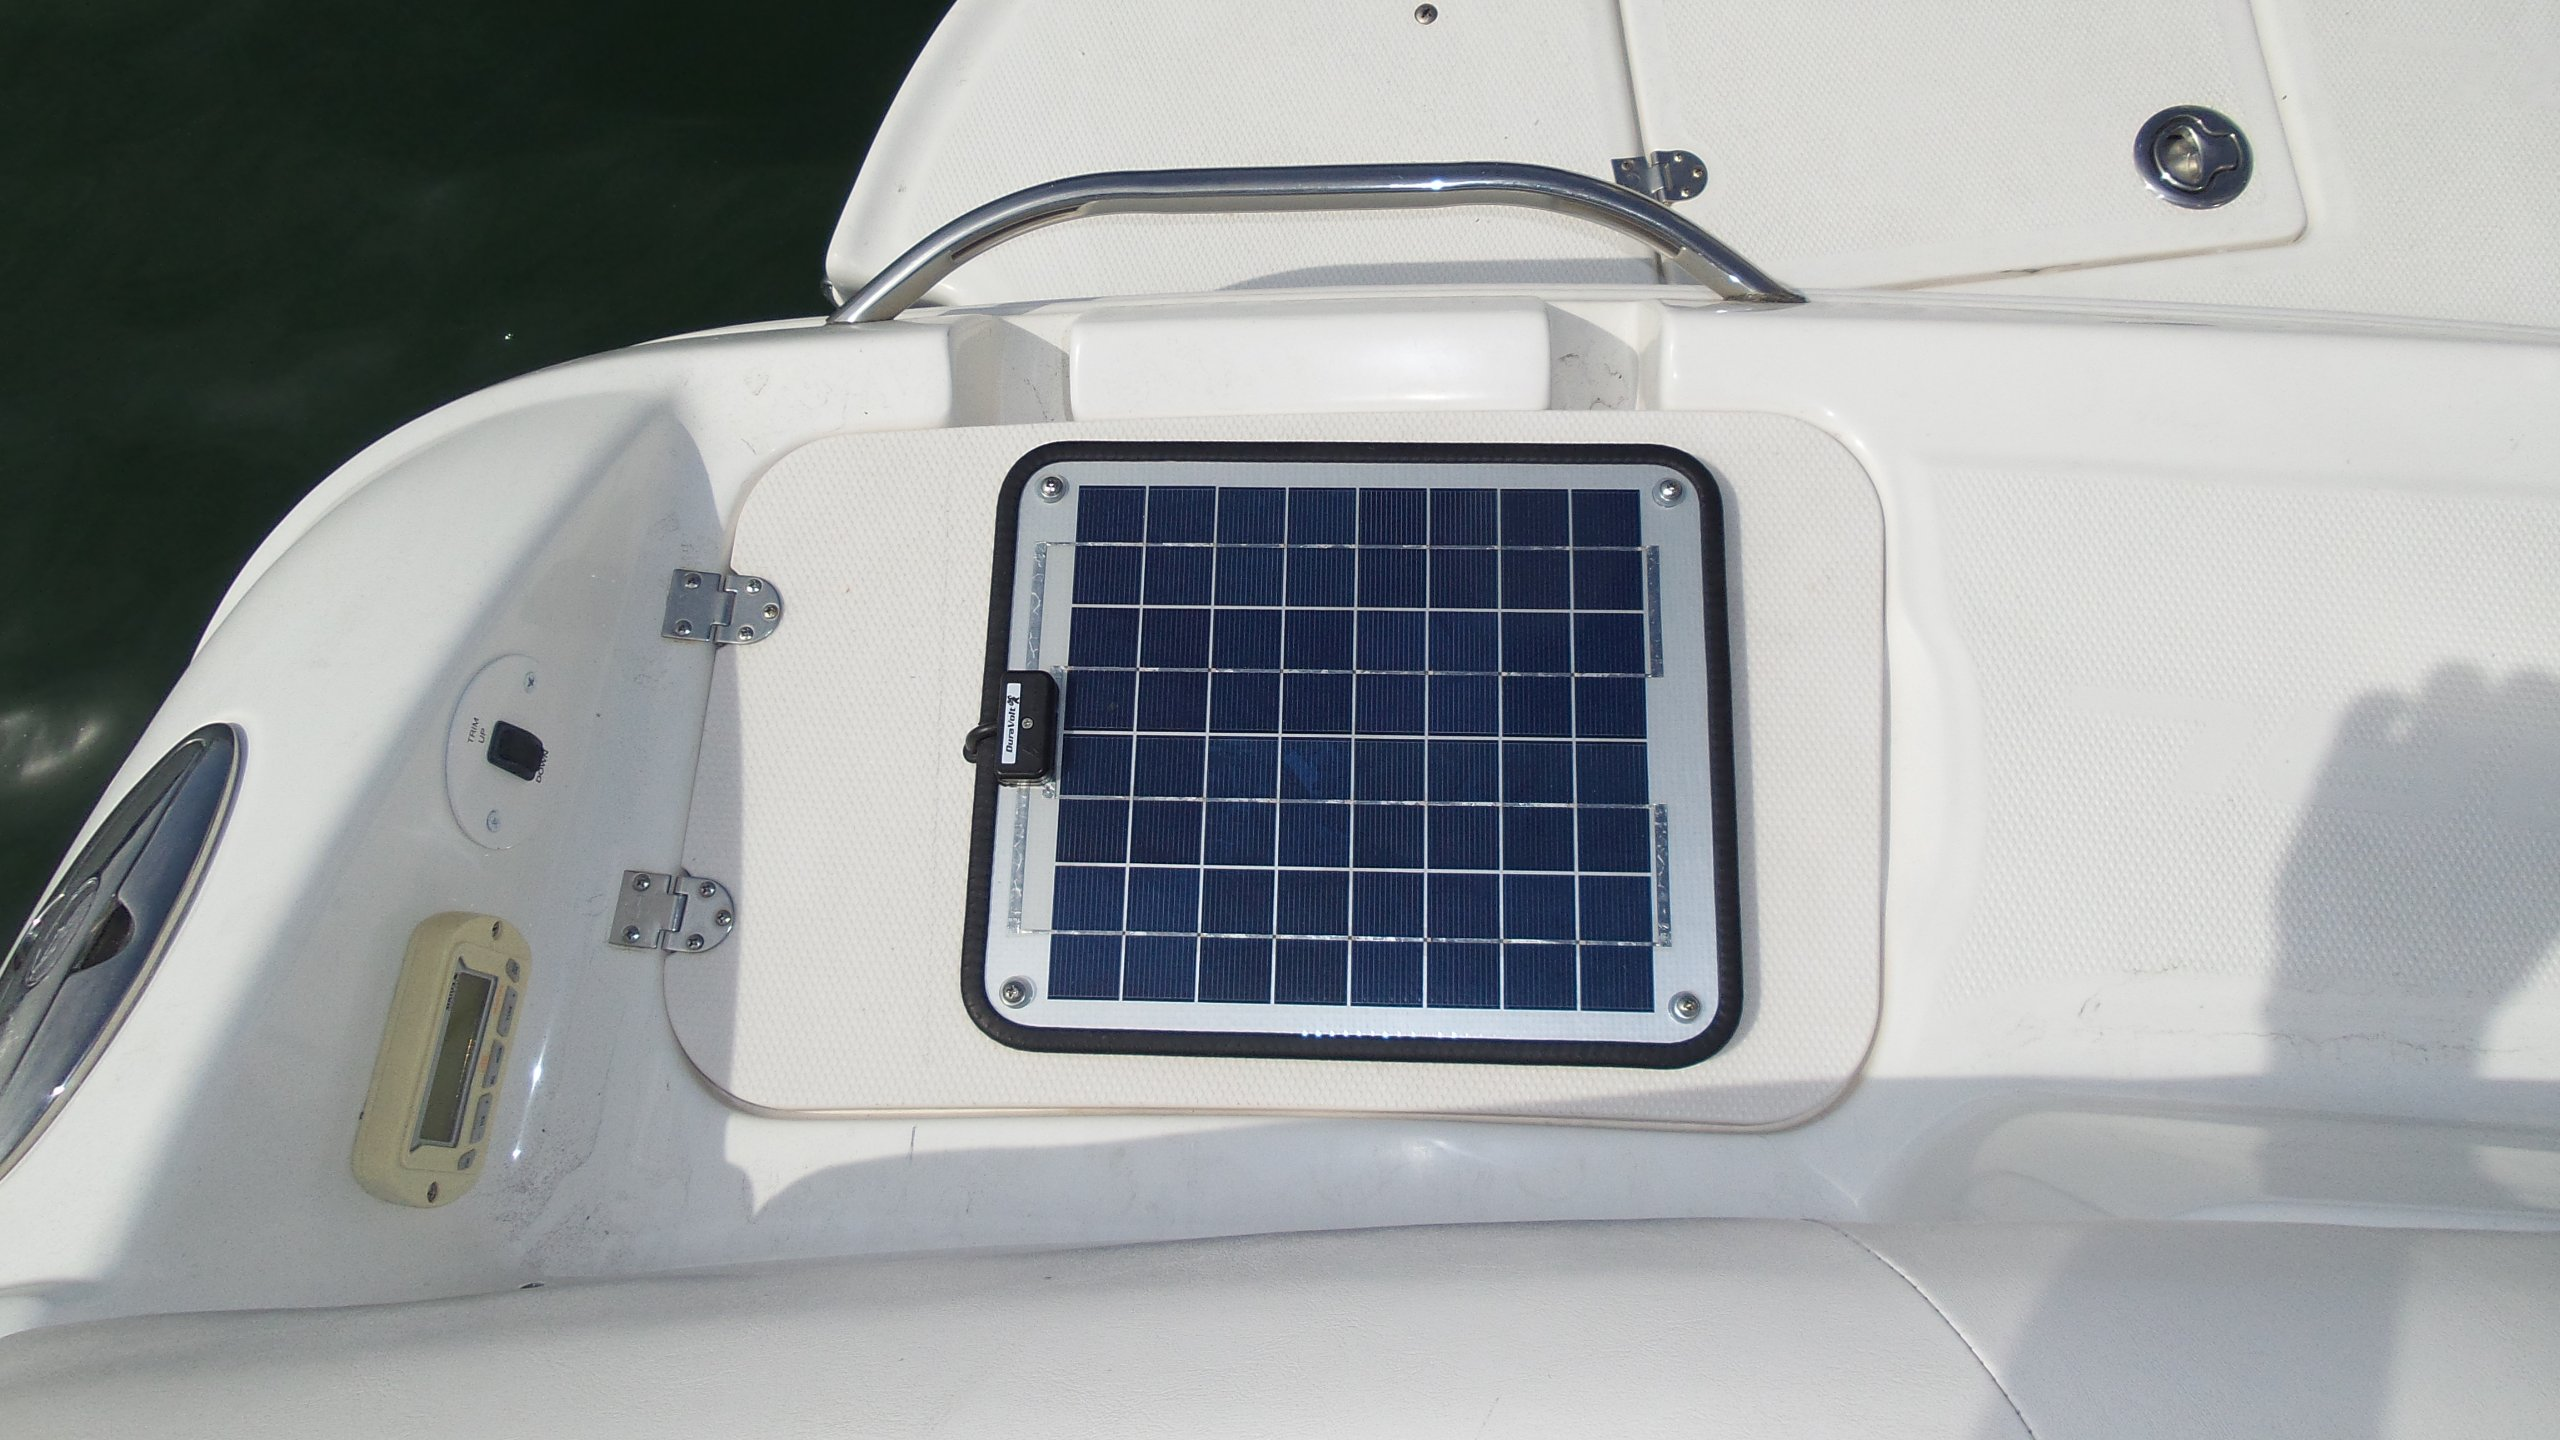 NOW 20 Watt 1.0 Amp - Solar Battery Charger - Boat, RV, Marine & Trolling Motor Solar Panel - 12 Volt - No experience Plug & Play Design. Dimensions 14.1'' L x 15.7'' W x 1/4'' Thick. 10' cable. by DuraVolt (Image #6)